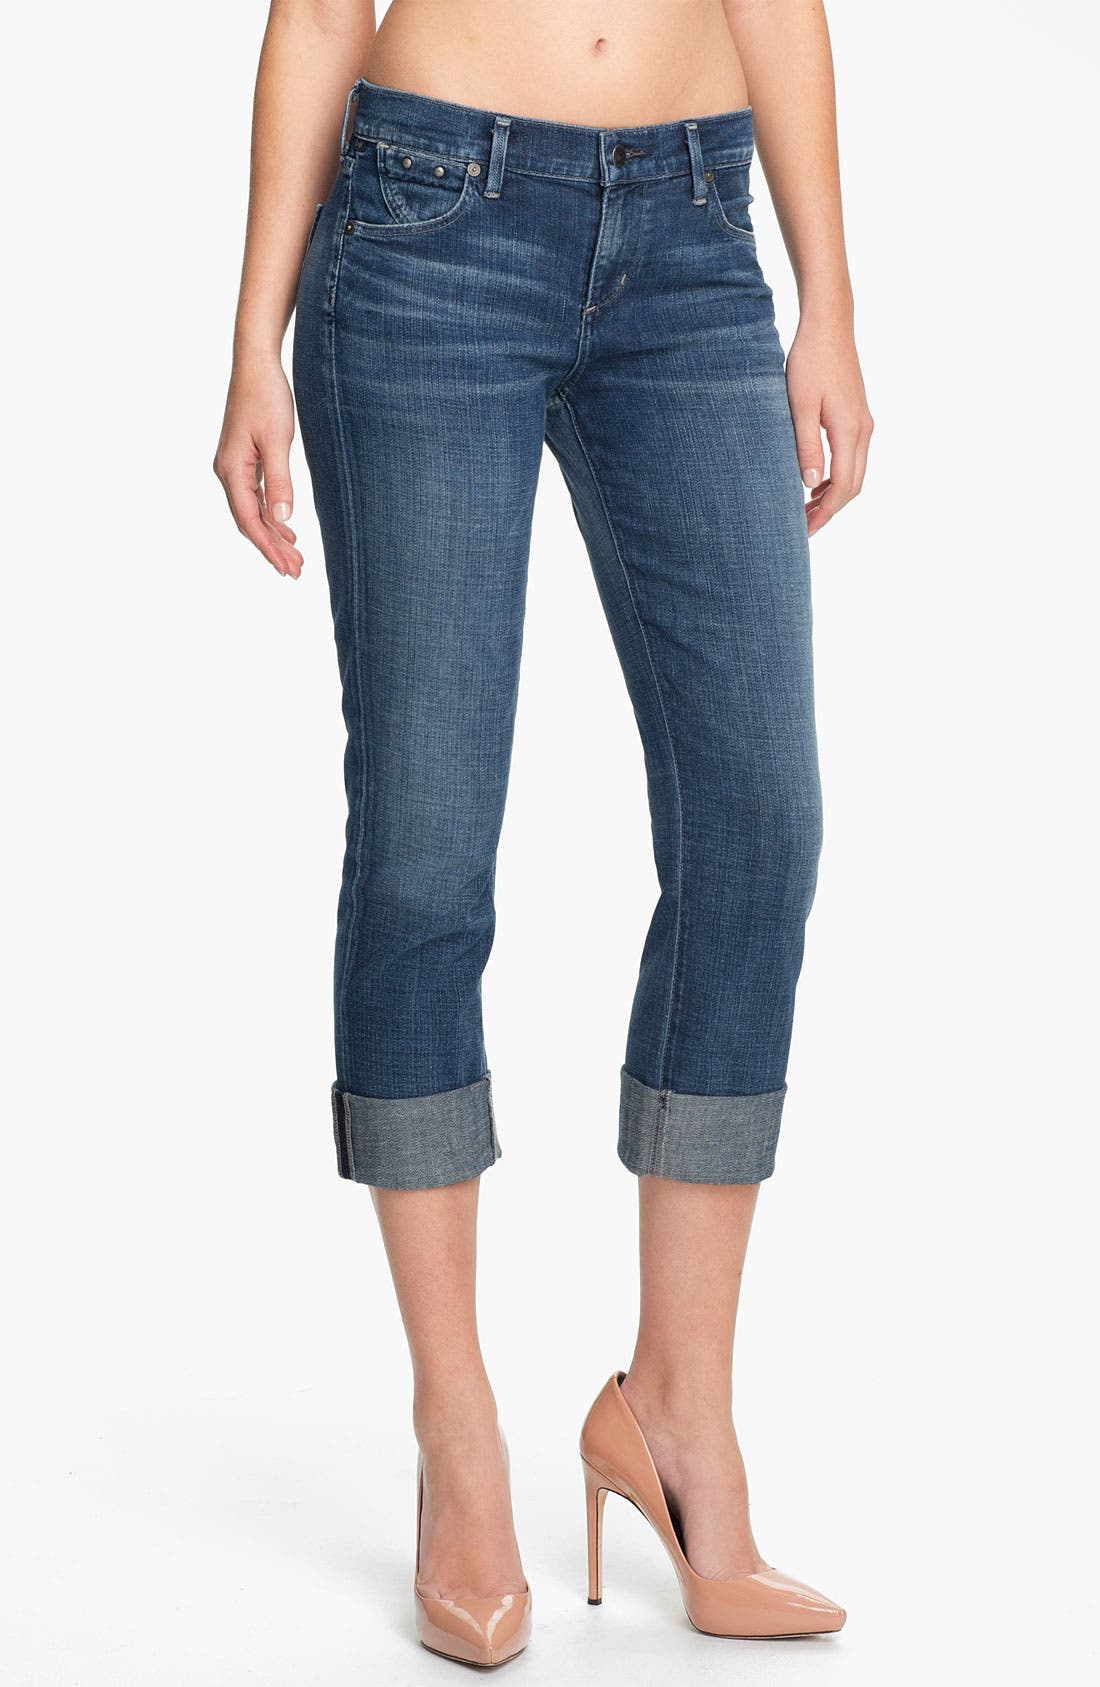 Alternate Image 1 Selected - Citizens of Humanity 'Dani' Crop Straight Leg Jeans (Wedgewood)